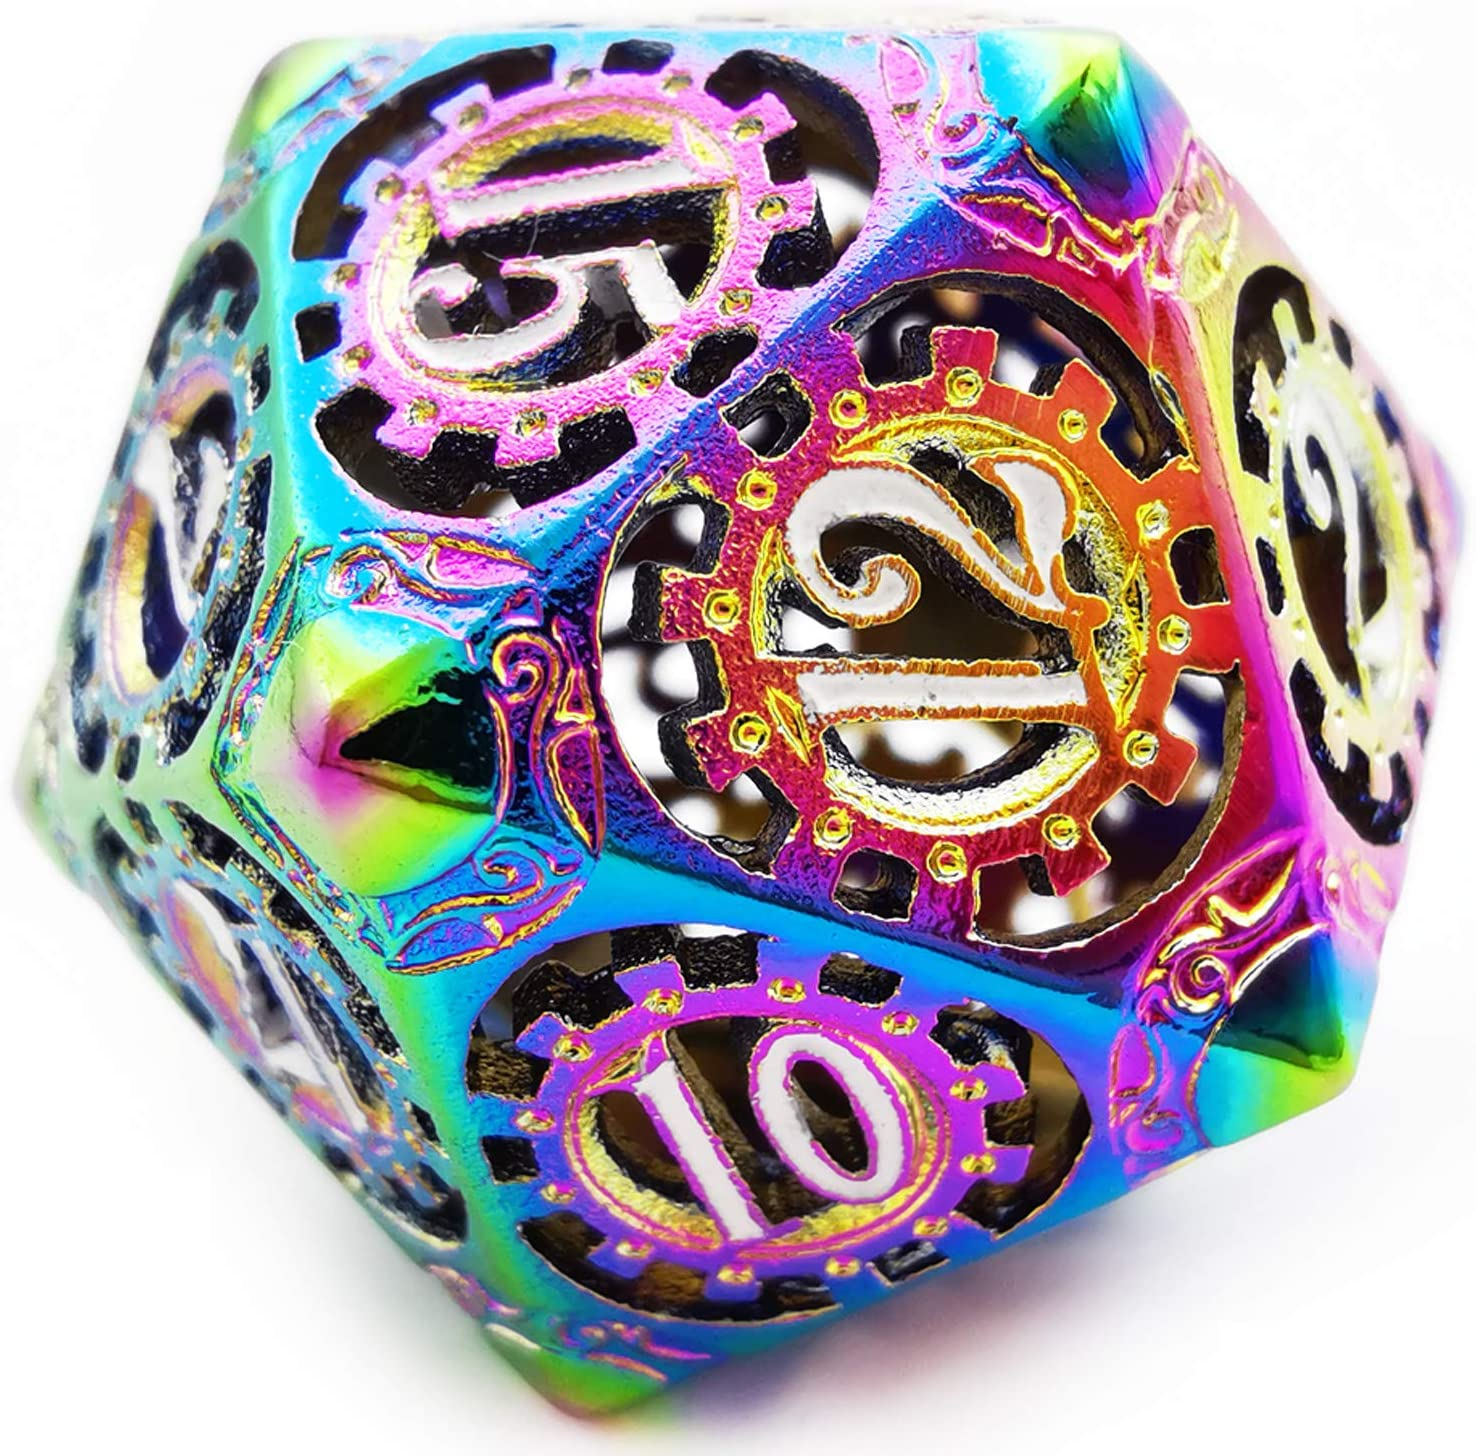 HAOMEJA Hollow Dragons Metal DND Dice Game Set 7 Role Playing Dice D/&D Dice Dungeons and Dragons RPG MTG Table Games Colorful